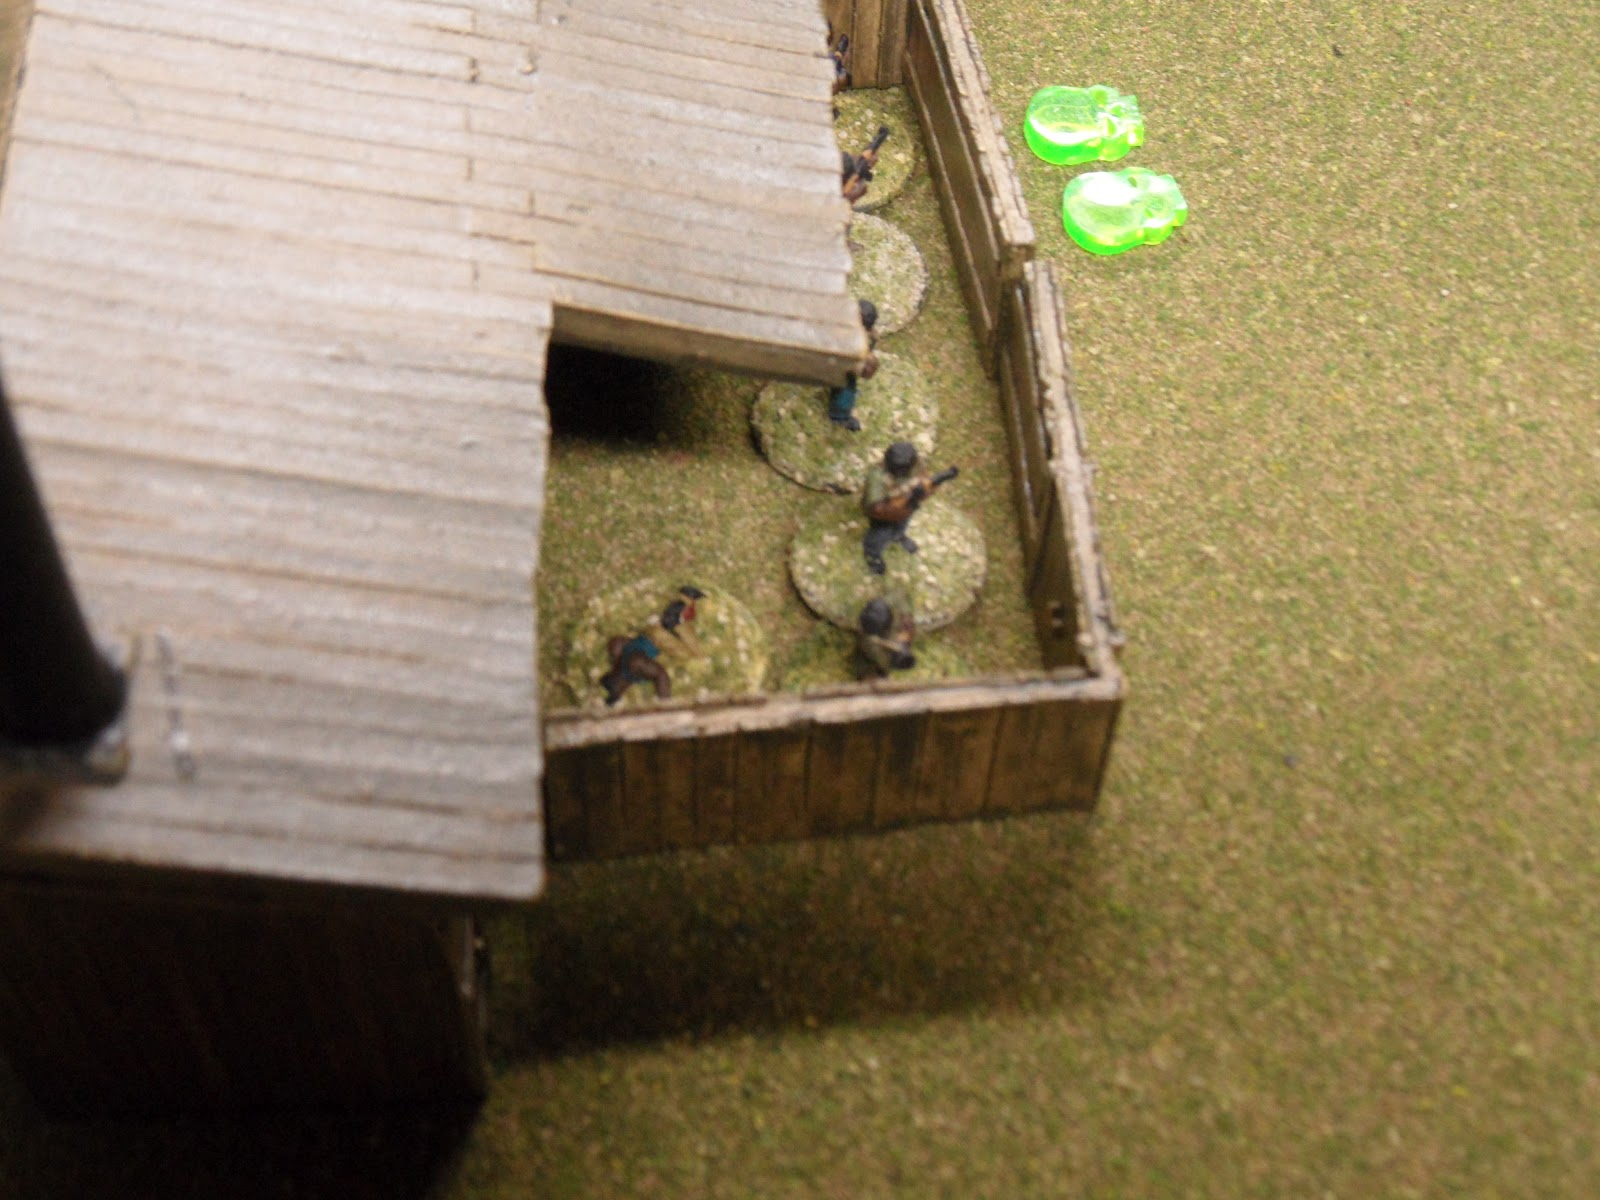 Back at the sawmill, the IMC forces maintain their foothold despite casualties.